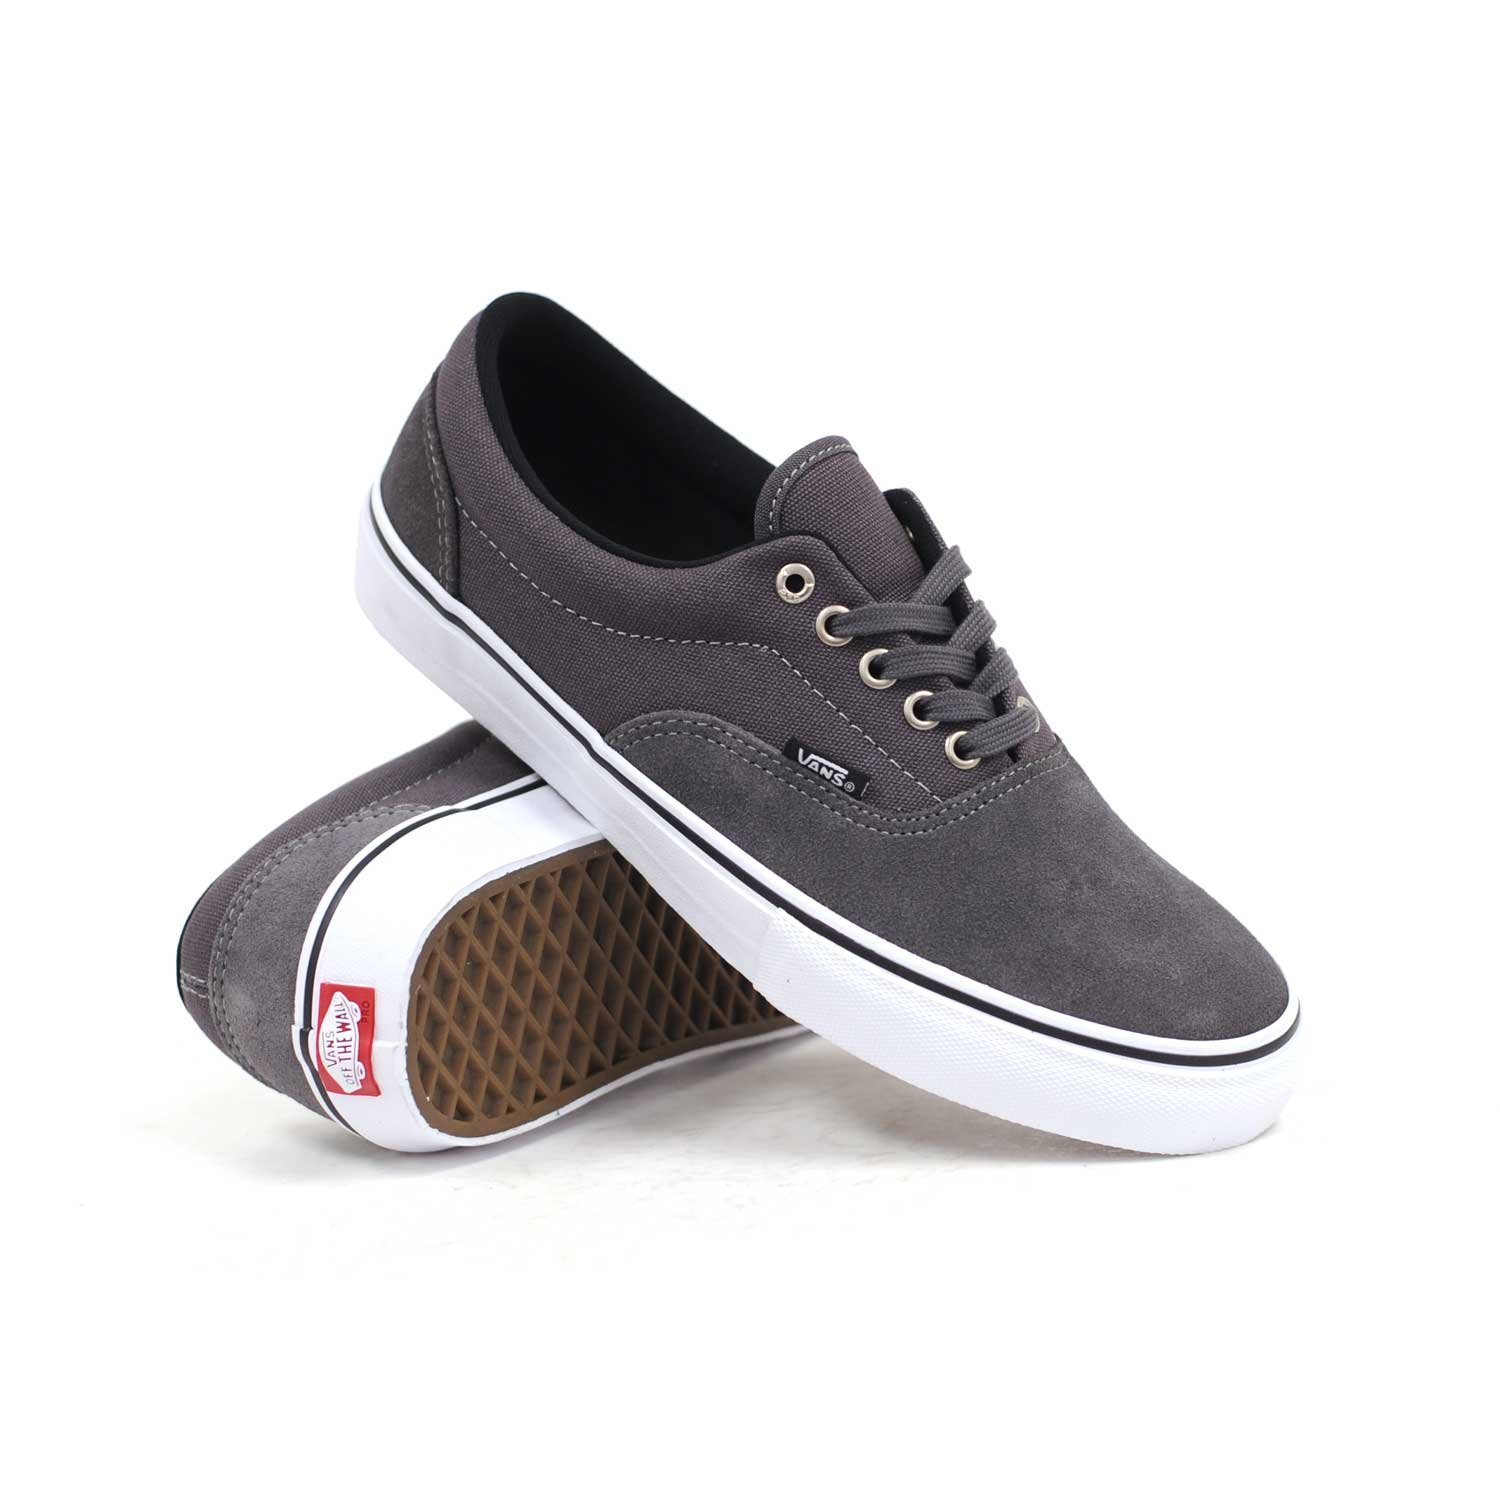 a60396f18e Amazon.com  Vans Era Pro (Dark Grey) Men s Skate Shoes7.5  Everything Else